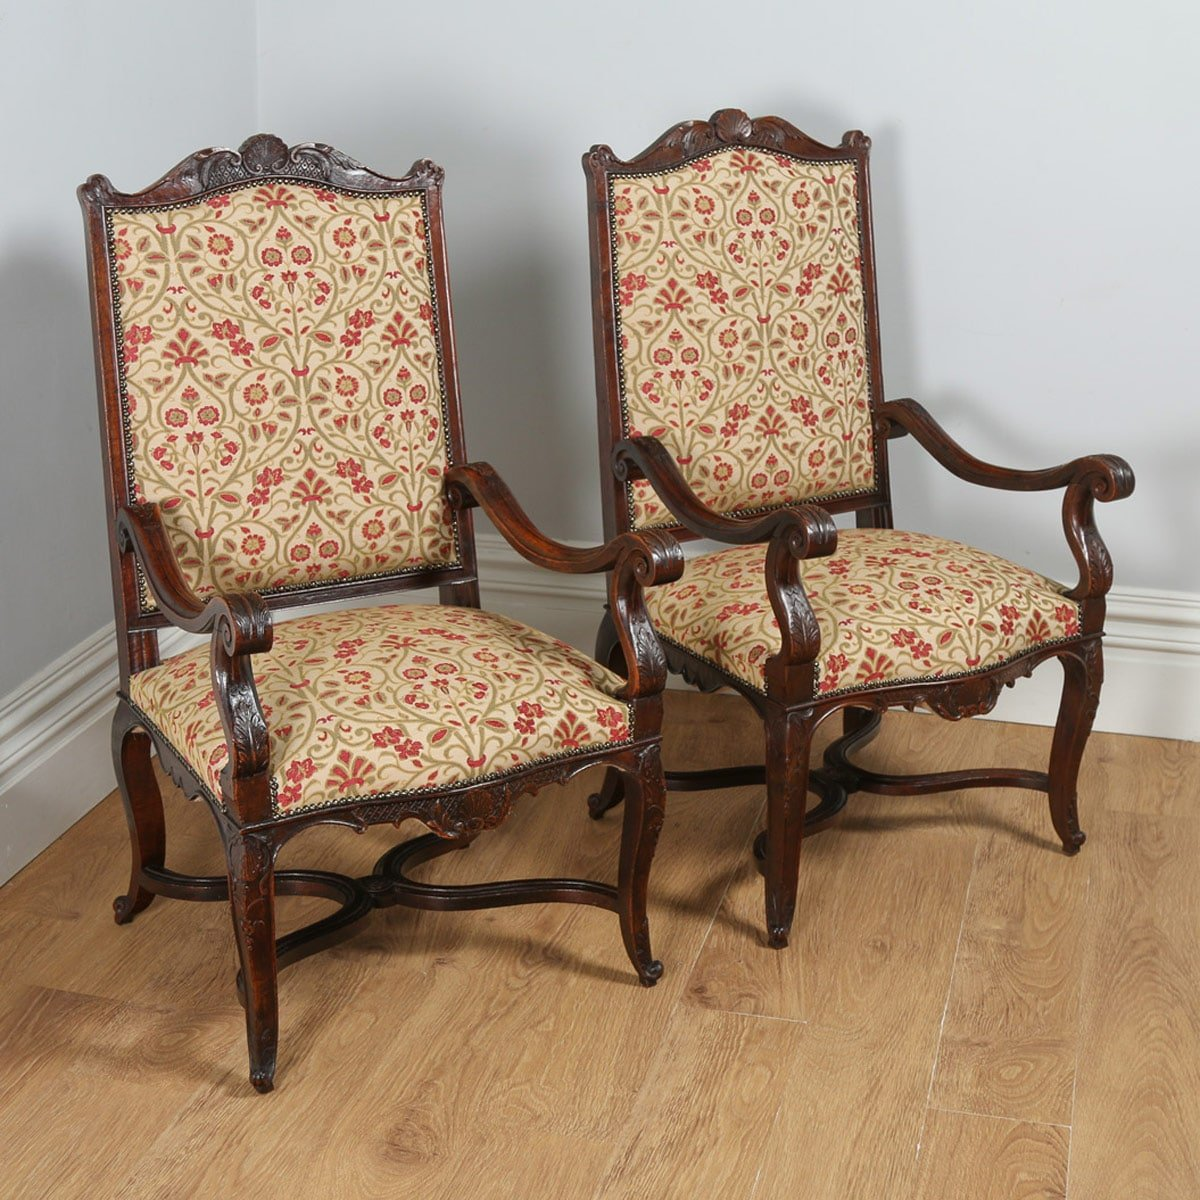 Antique Pair of French Walnut Upholstered Tapestry Fauteuil Armchairs (Circa 1840) - yolagray.com